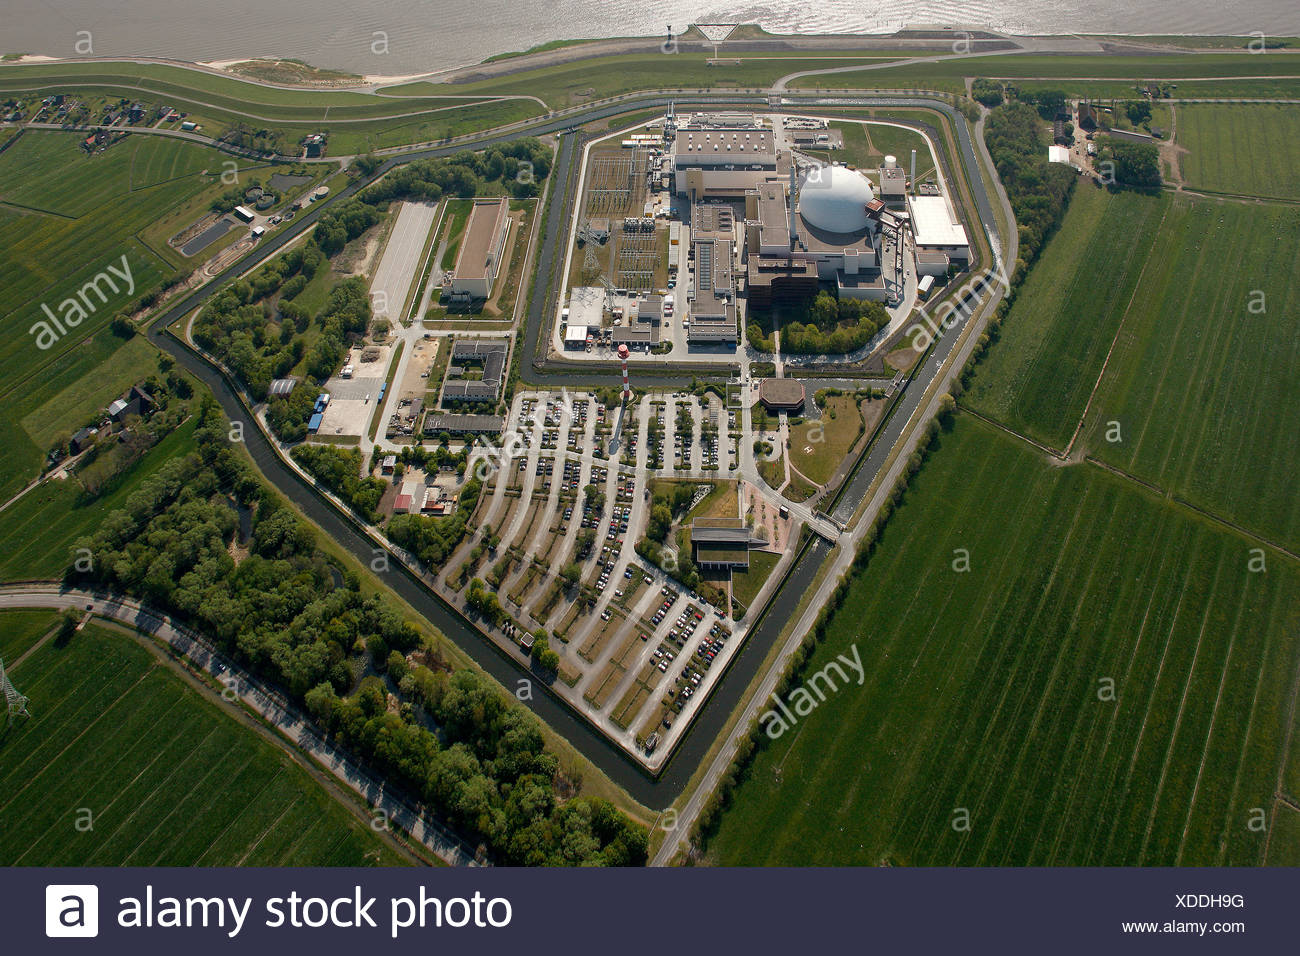 Aerial view, Brokdorf Nuclear Power Plant, Schleswig-Holstein, Germany, Europe - Stock Image